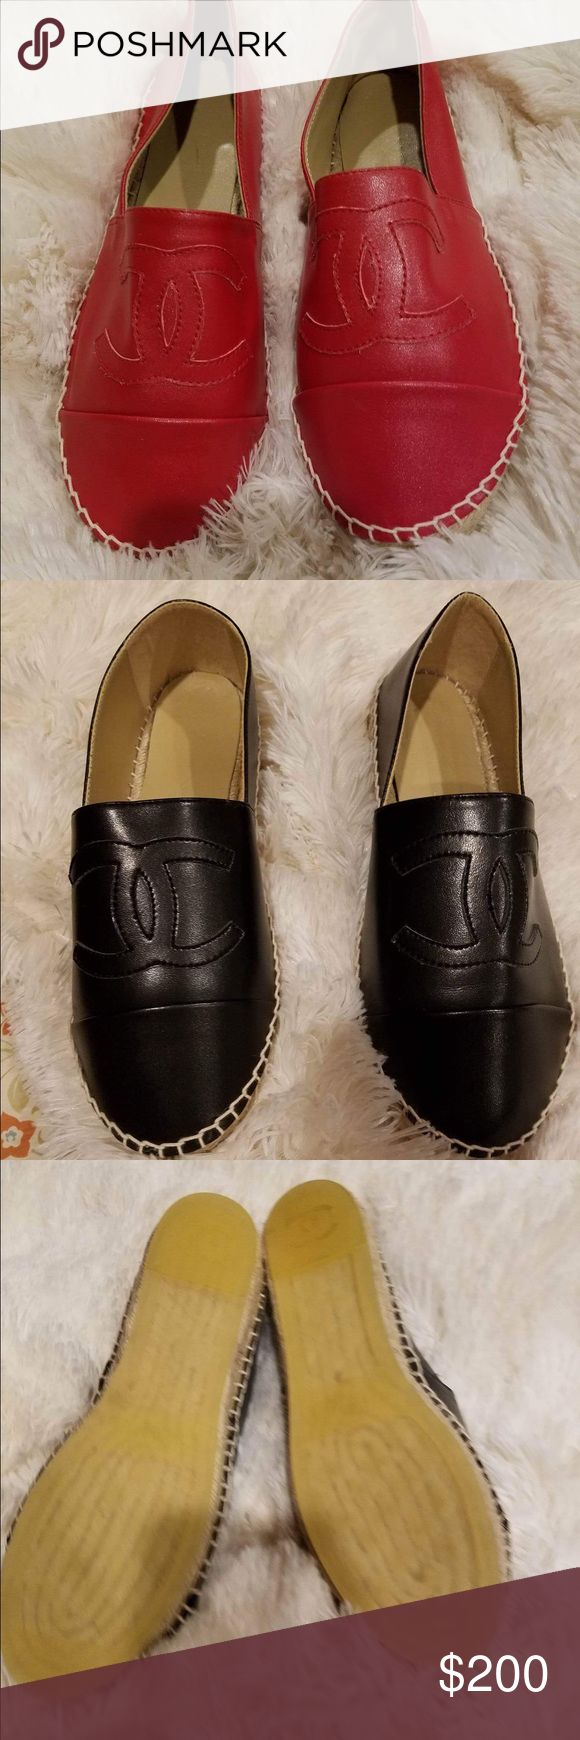 Chanel espadrilles Brand new espadrilles Chanel price reflects auth! $200 each CHANEL Shoes Espadrilles